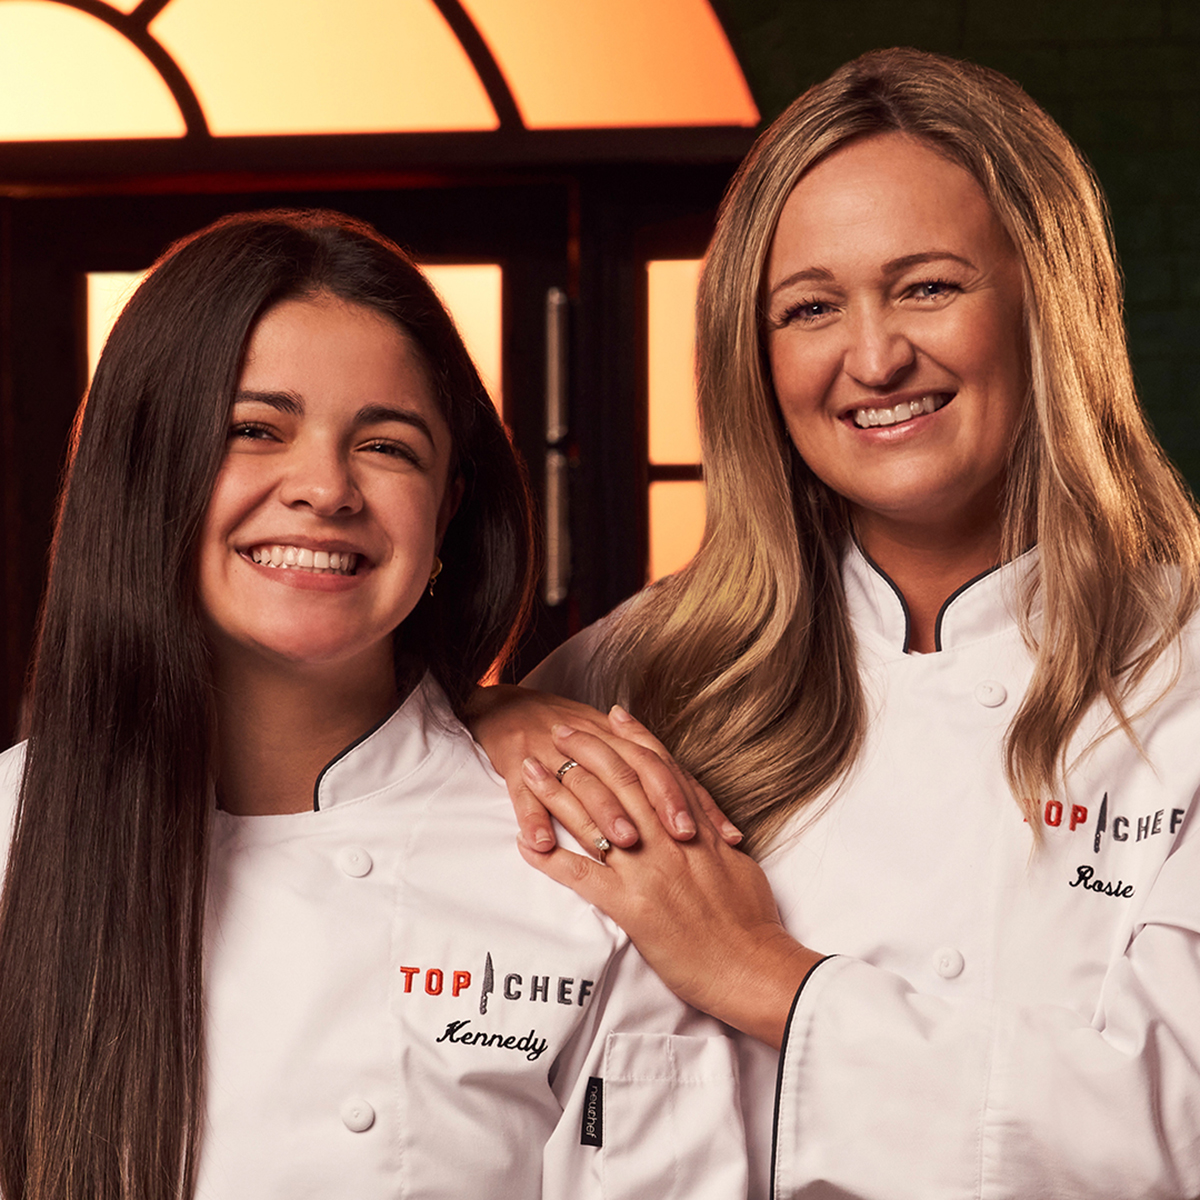 Top Chef Family Style contestants Kennedy and Rosie Torres